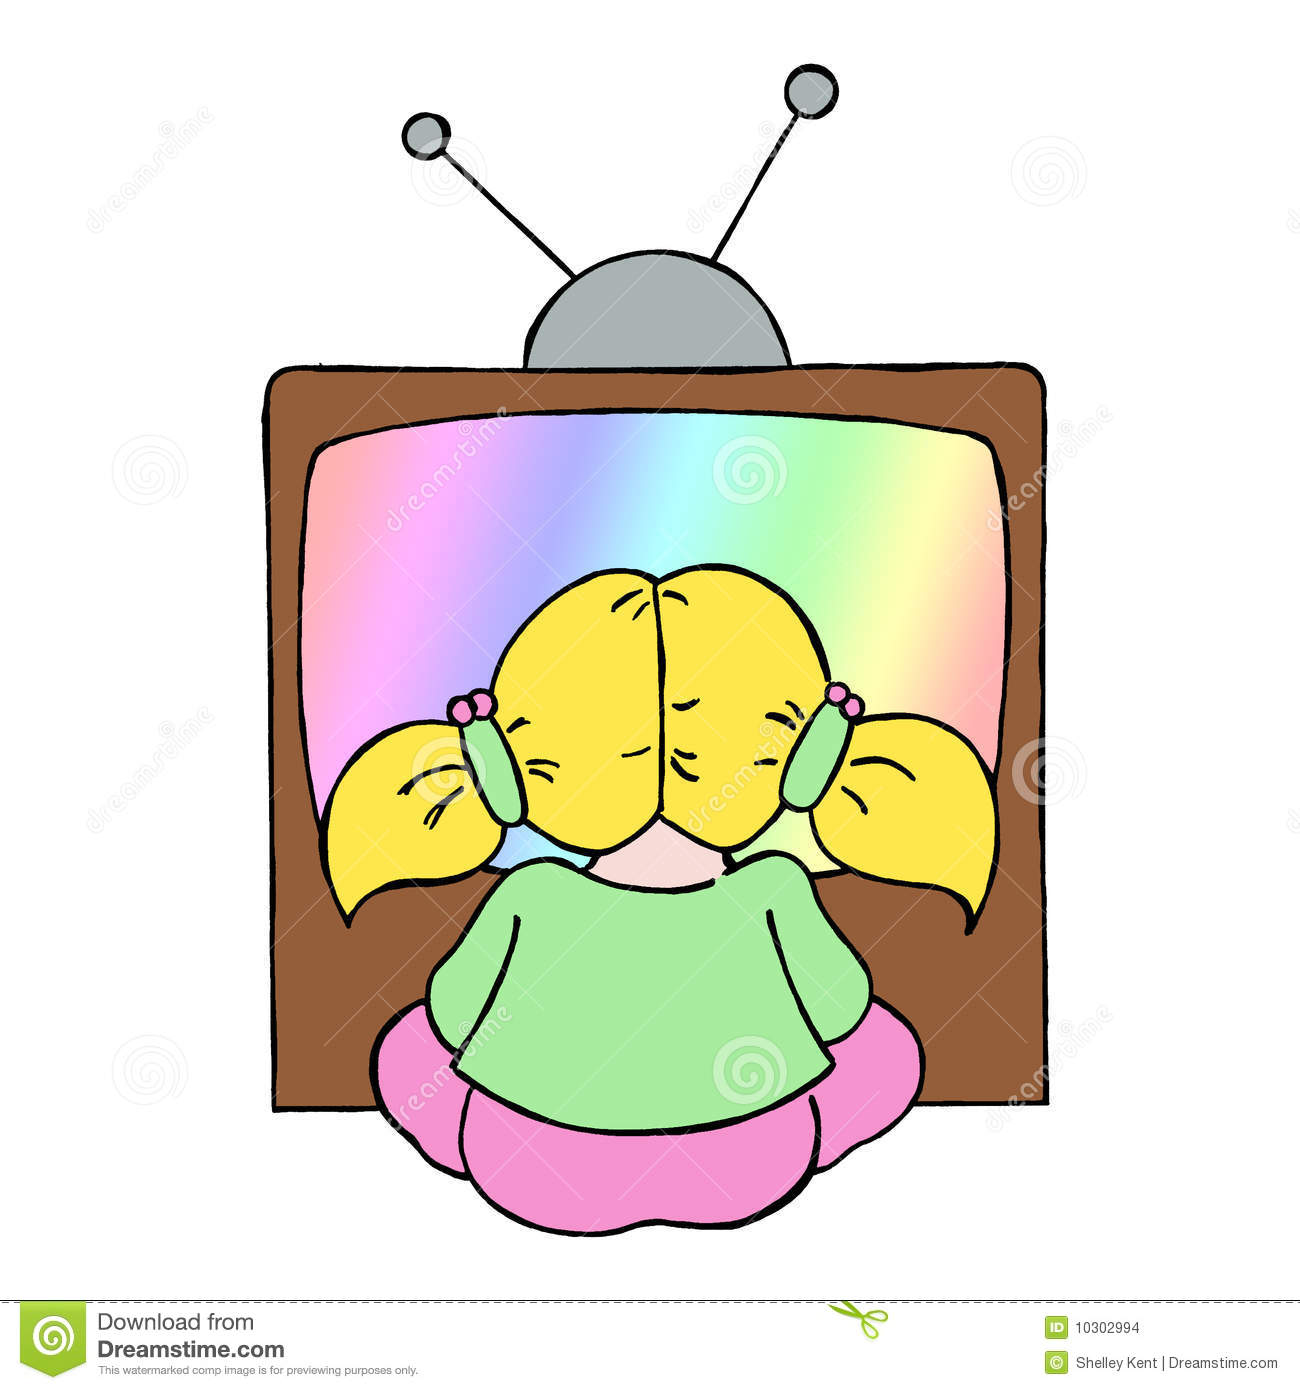 Watching tv cliparts clip art free Watching tv clipart 12 » Clipart Station clip art free